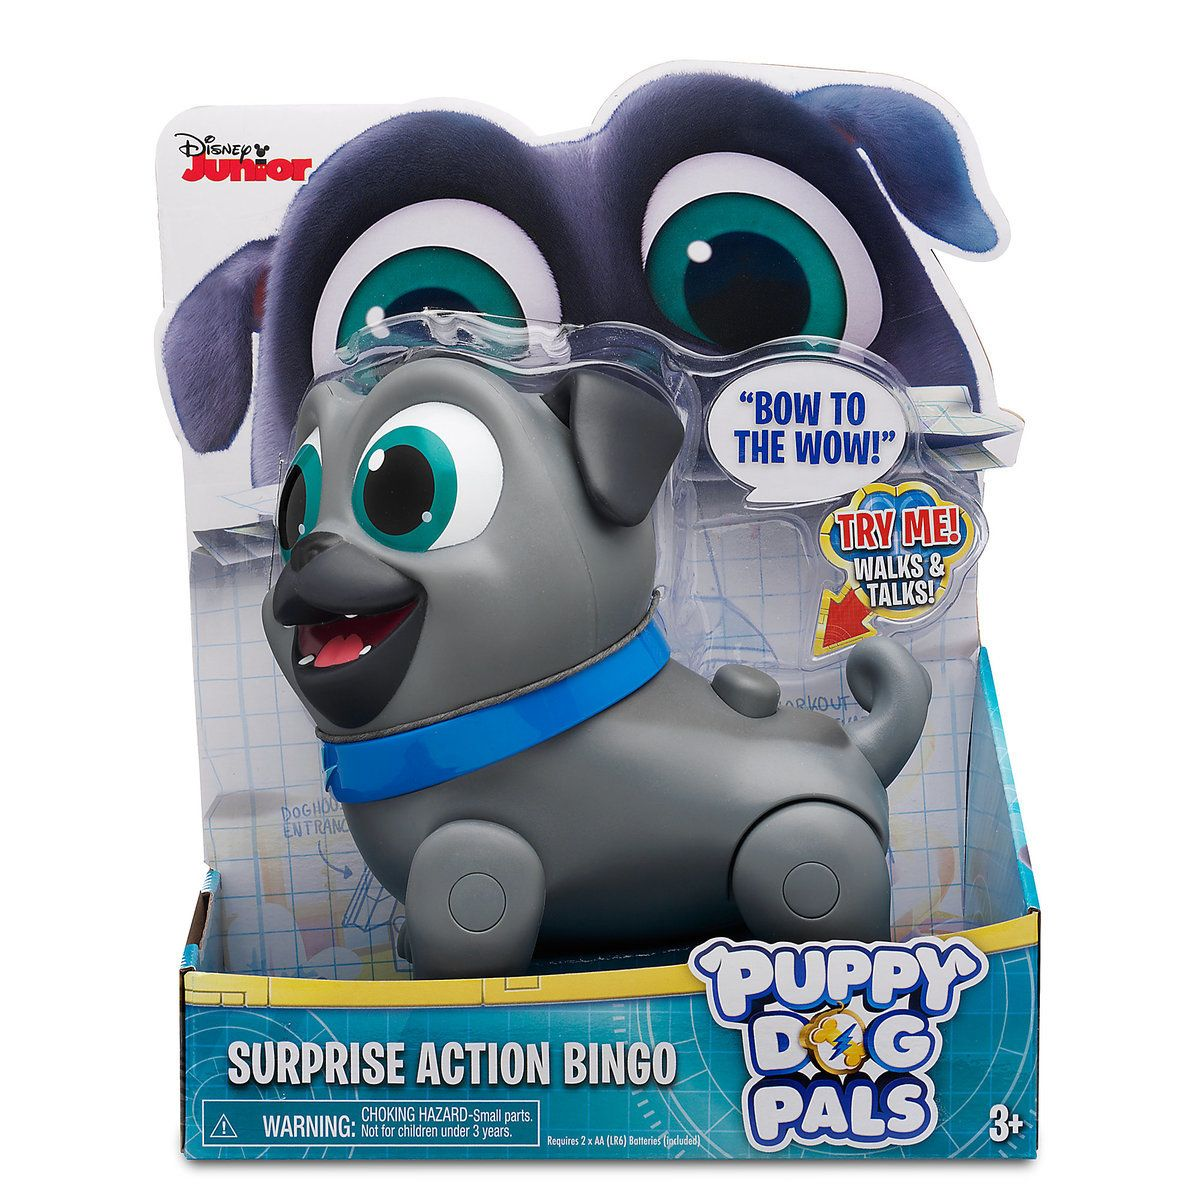 Bingo Surprise Action Toy Puppy Dog Pals Paw Patrol Toys Toy